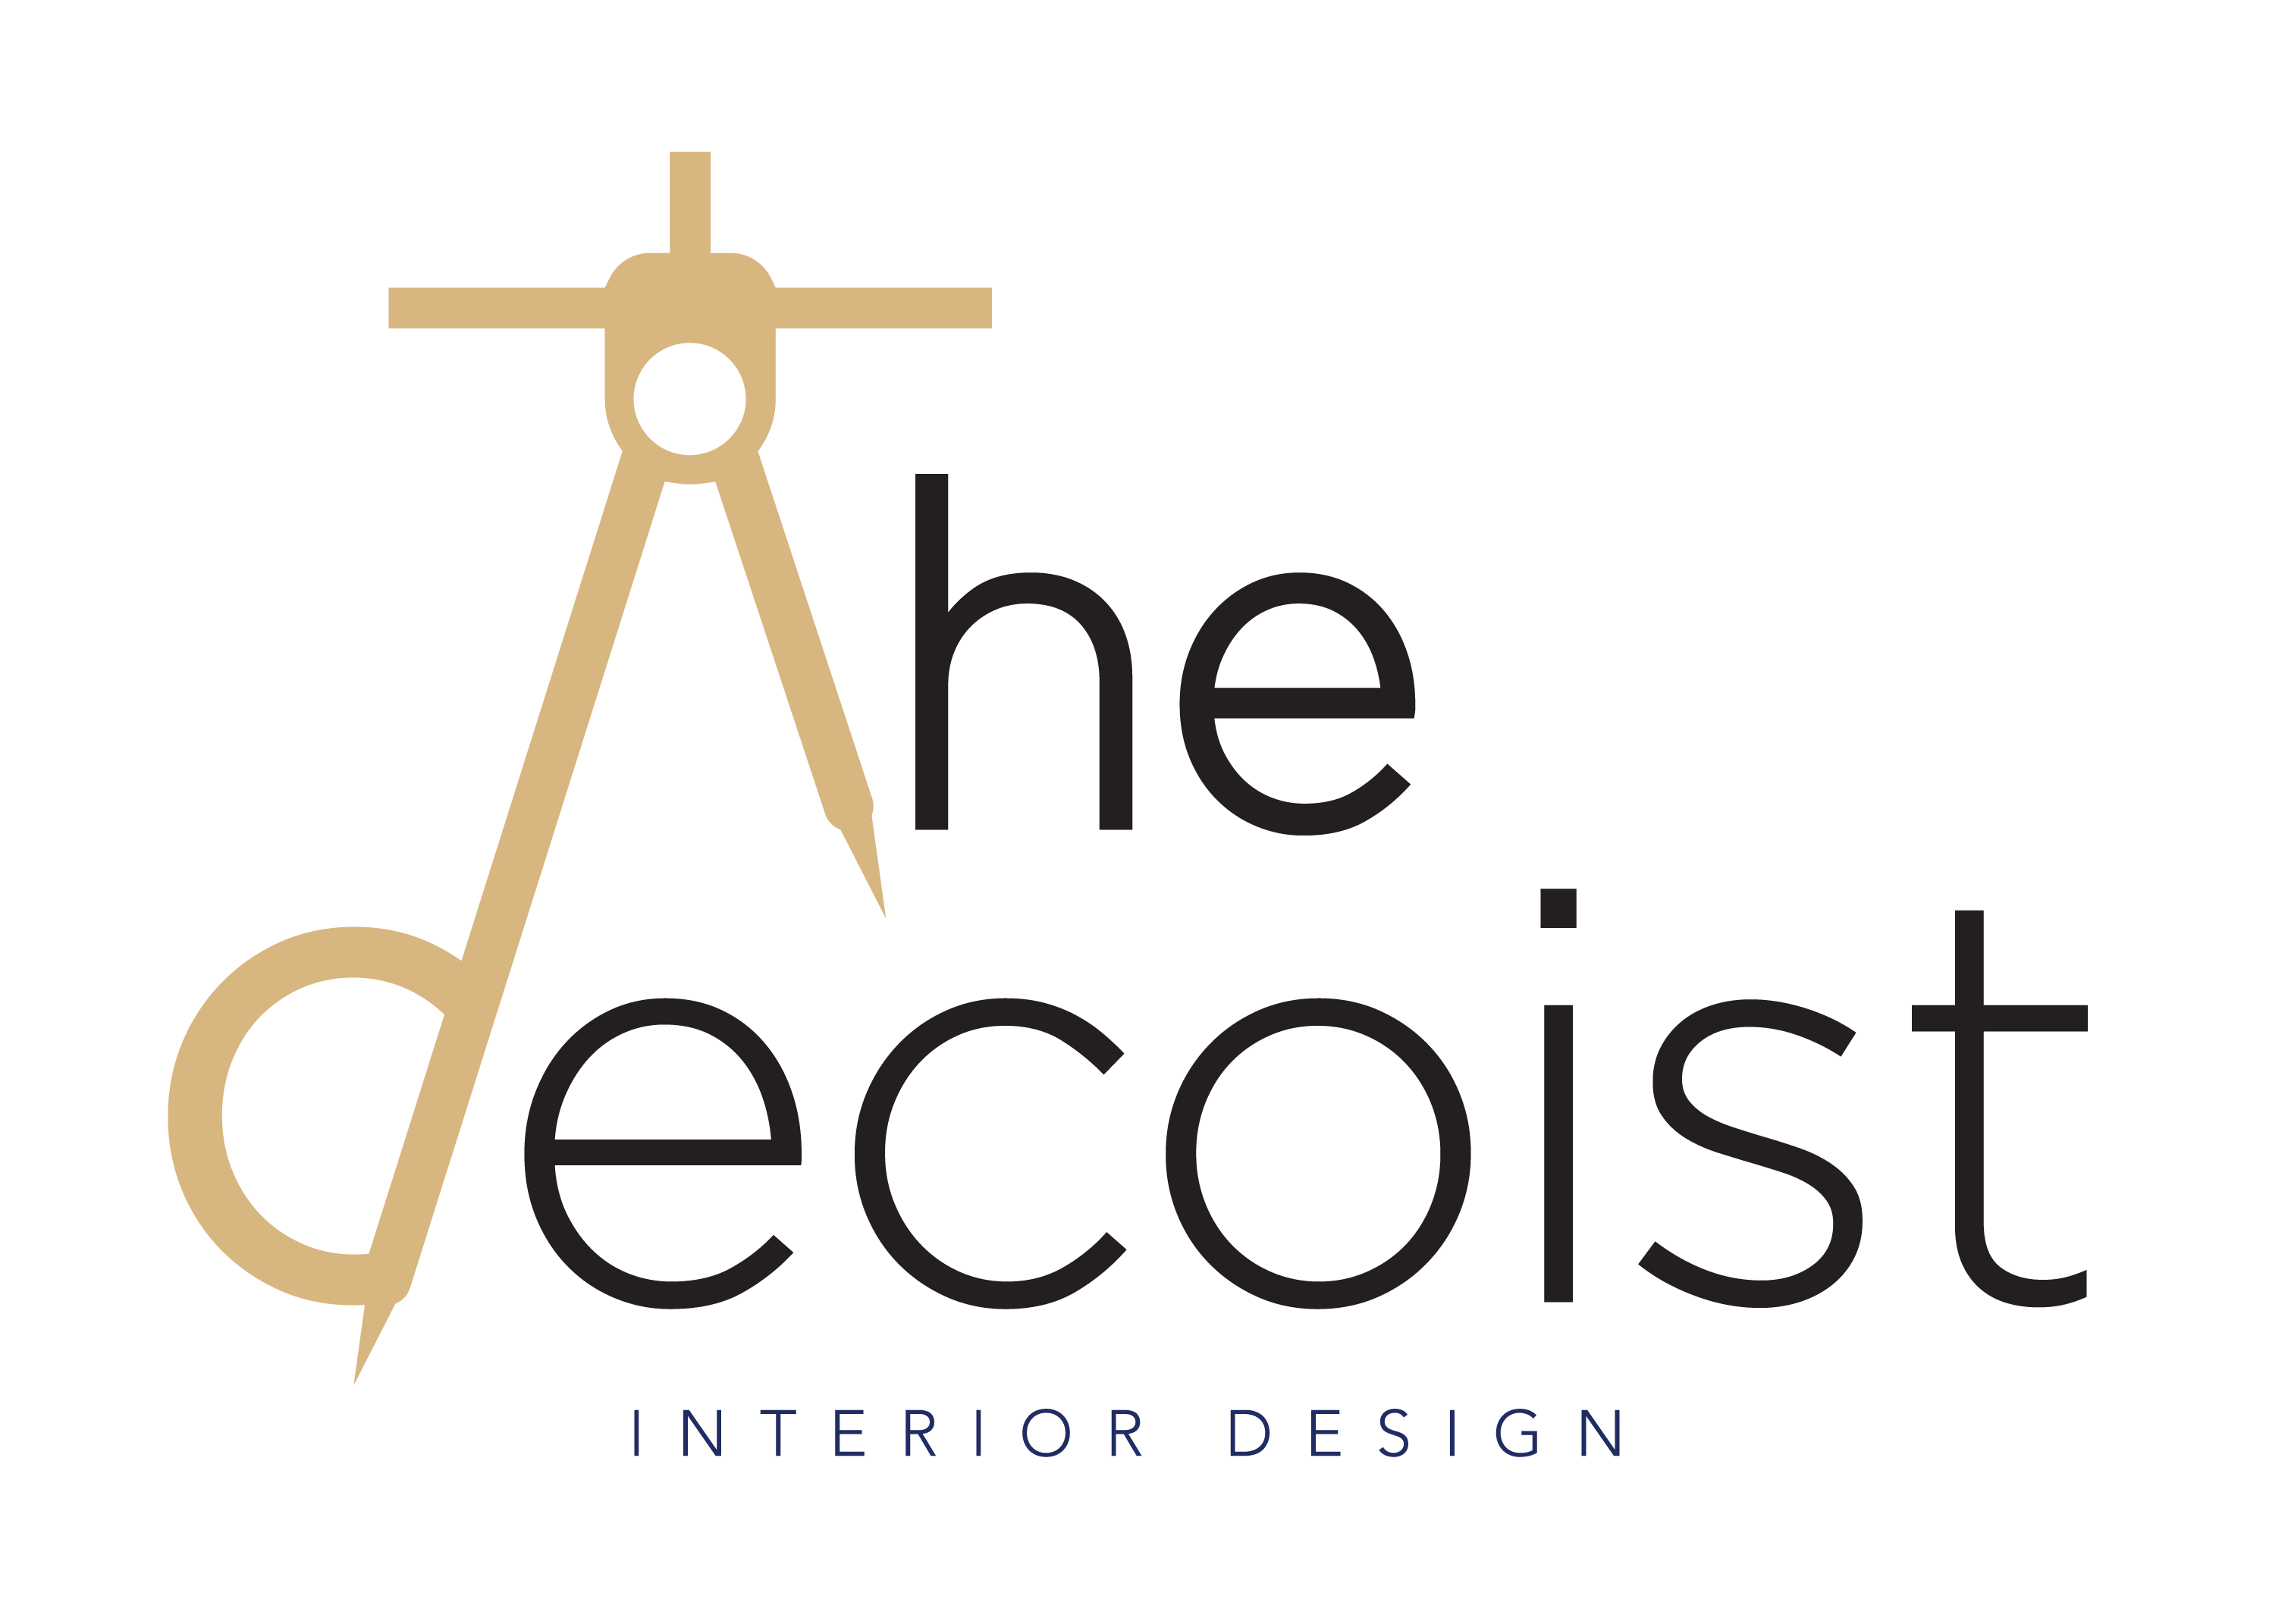 The Decoist Pte Ltd